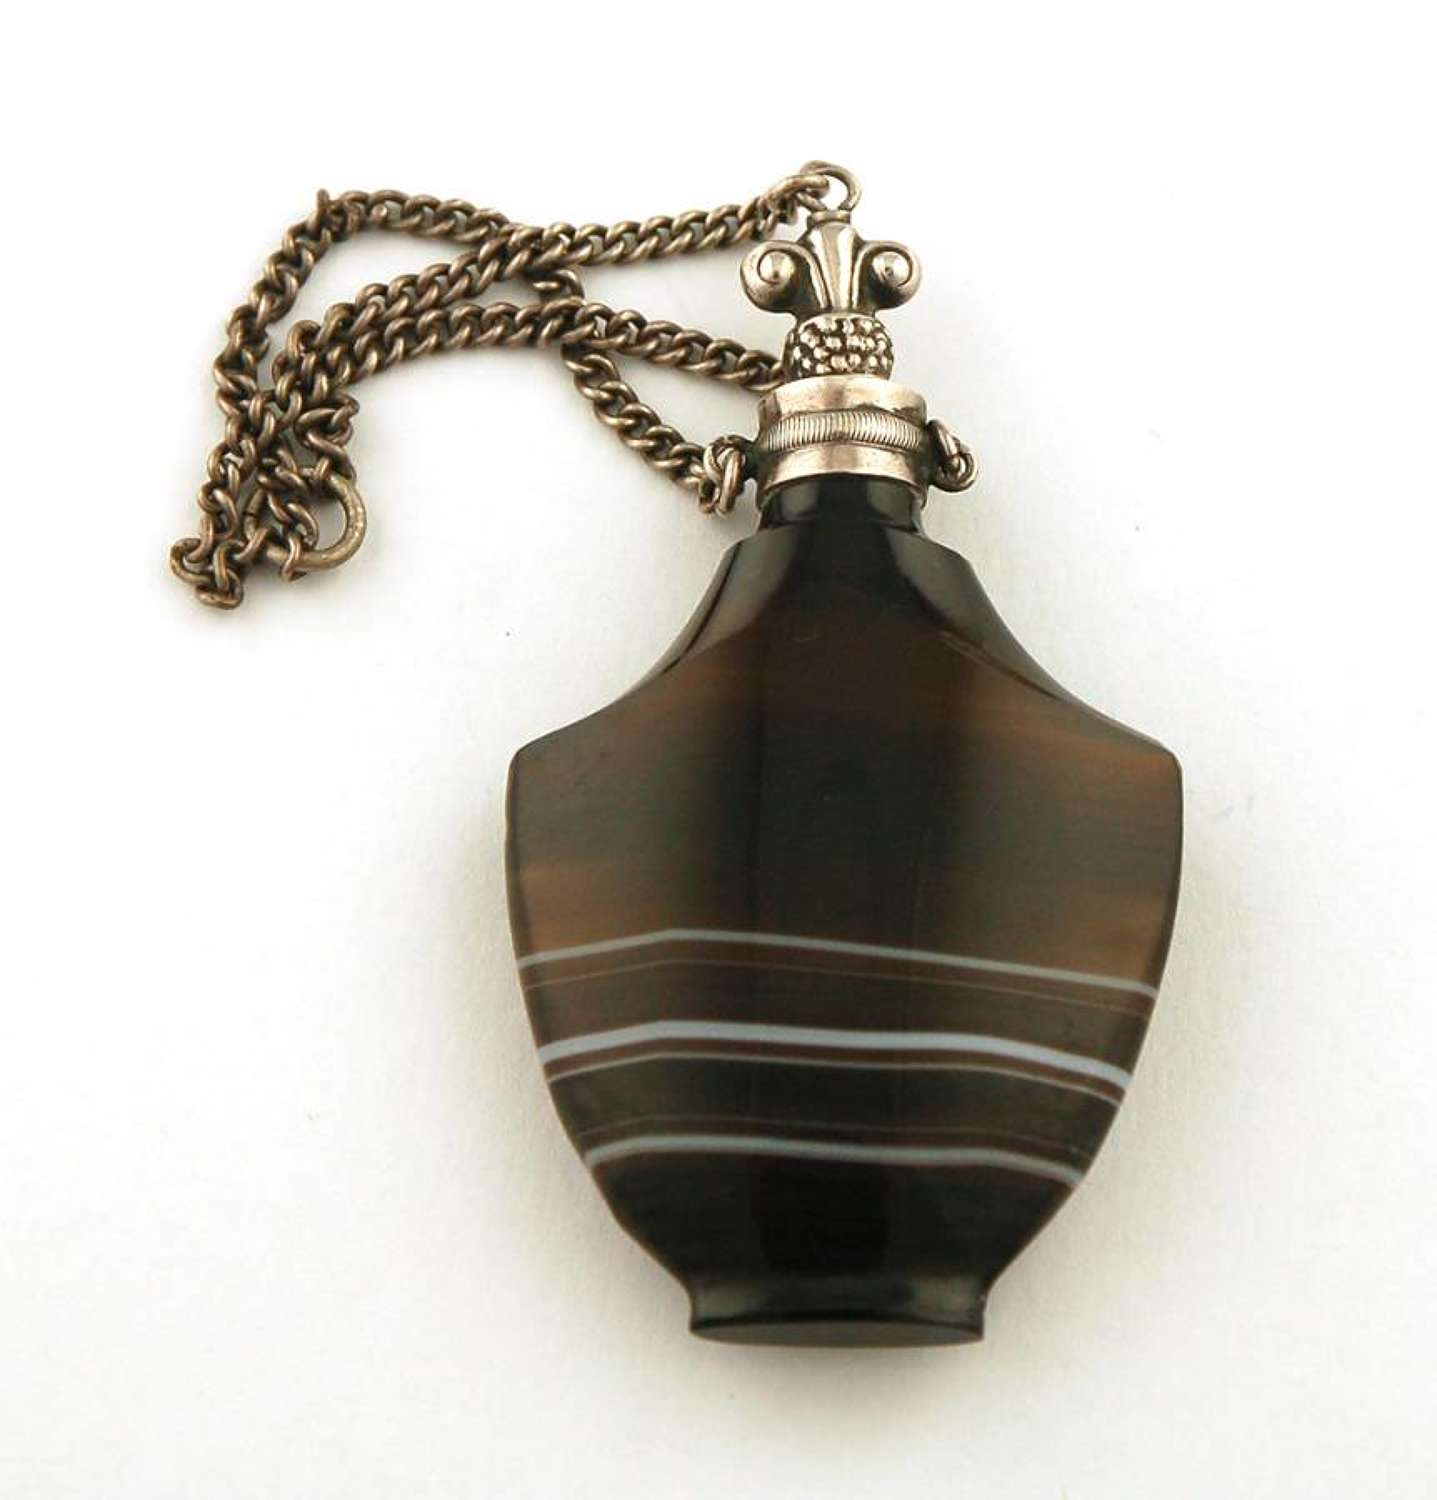 Onyx agate scent